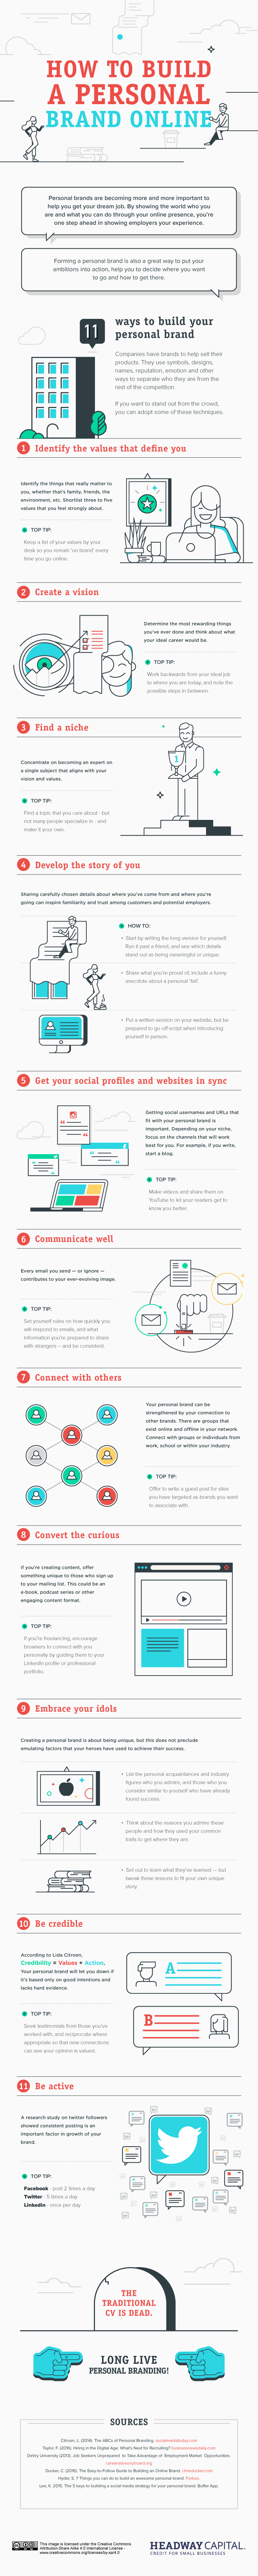 how-to-build-a-personal-brand-online